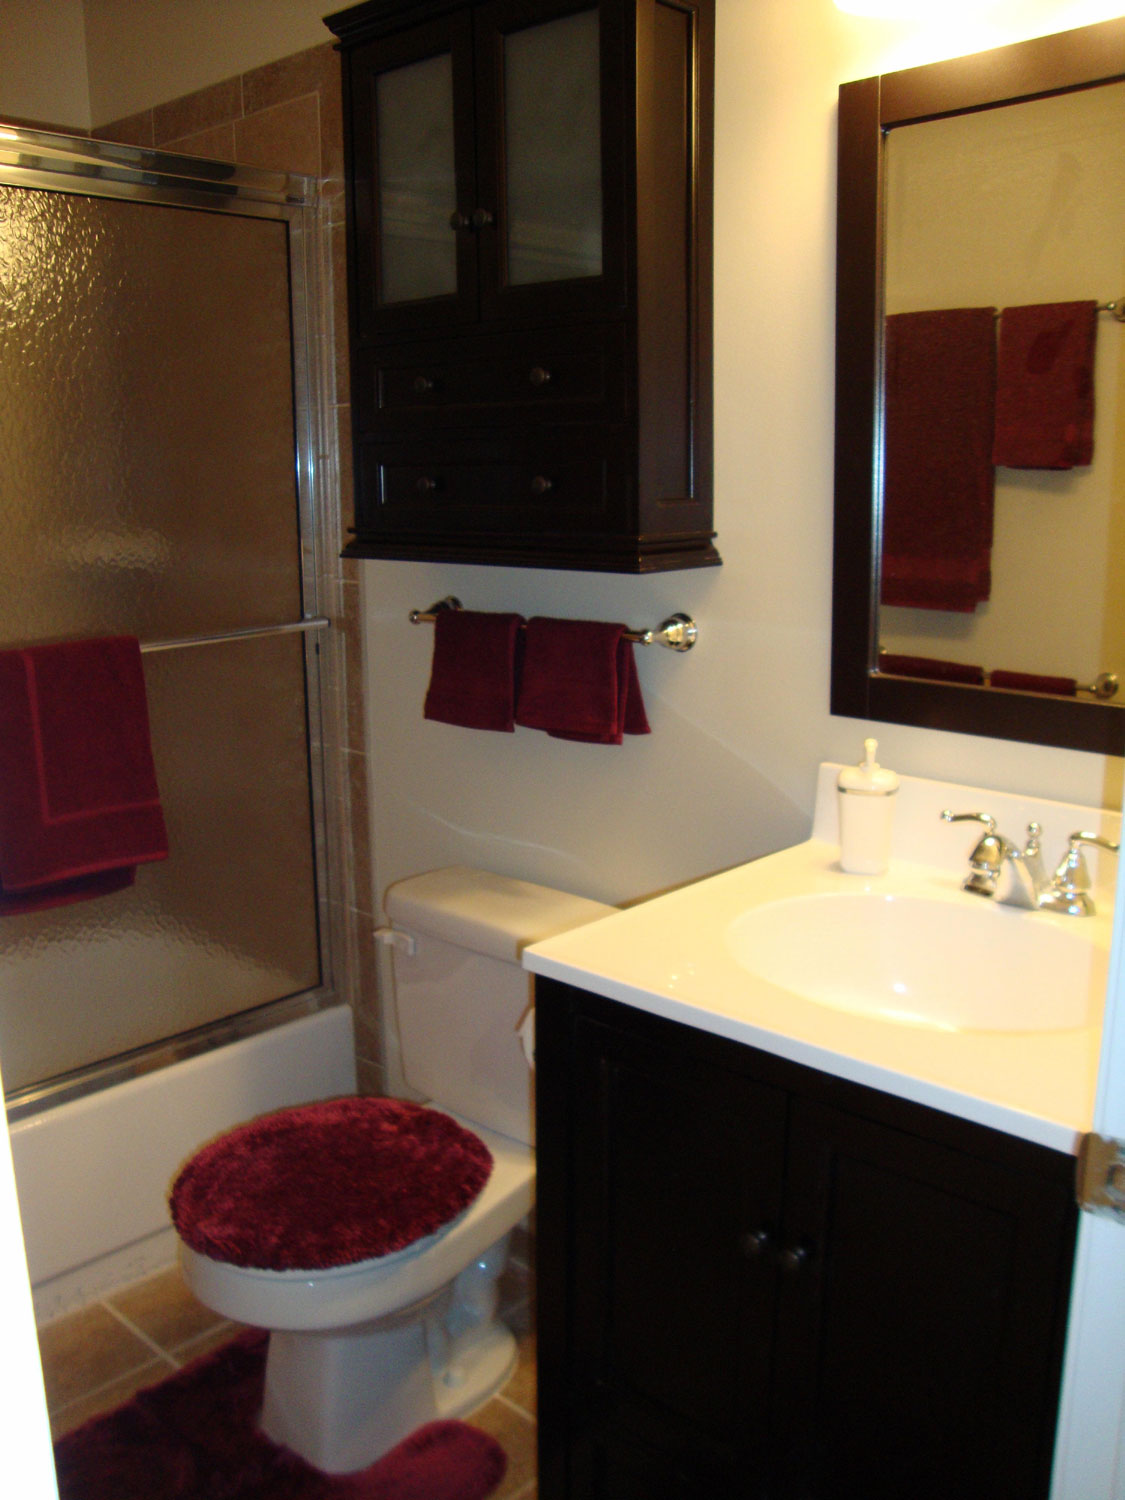 Bathroom Remodeling Olney Md bathroom remodeling montgomery co md | handyman services